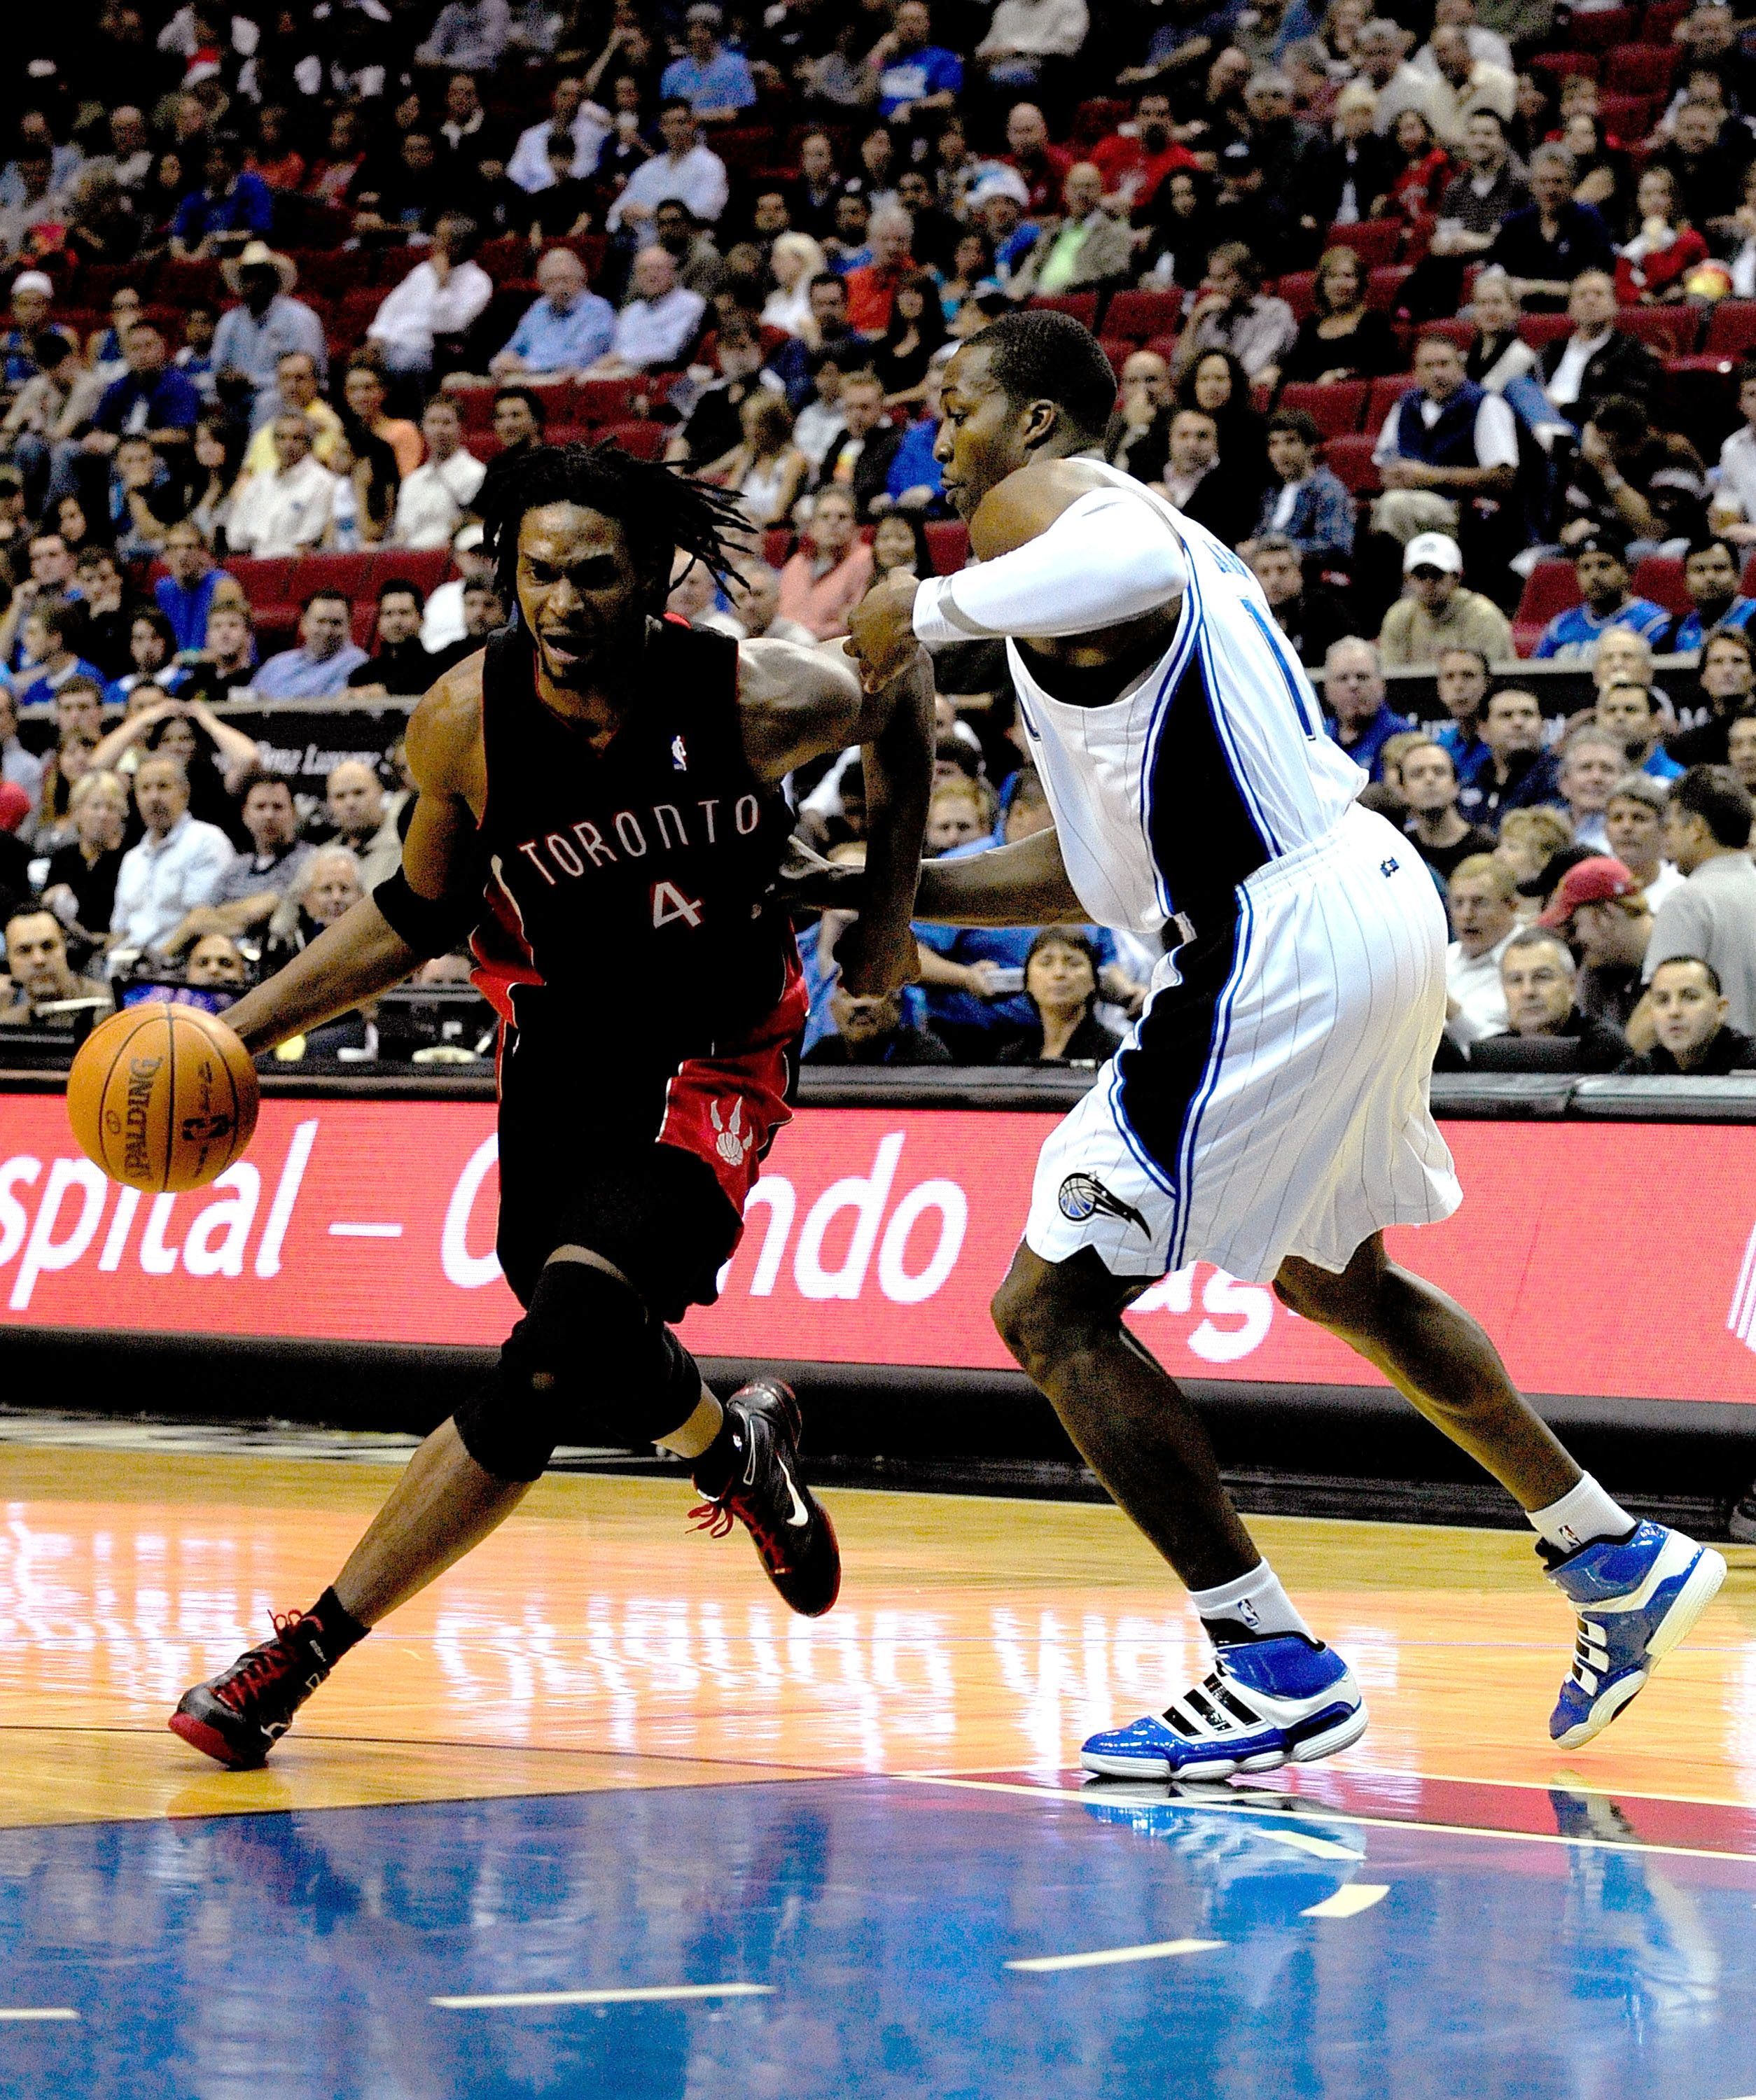 ORLANDO, FL - DECEMBER 16:  Chris Bosh #4 of the Toronto Raptors attempts to drives past Dwight Howard #12 of the Orlando Magic during the game at Amway Arena on December 16, 2009 in Orlando, Florida.  NOTE TO USER: User expressly acknowledges and agrees